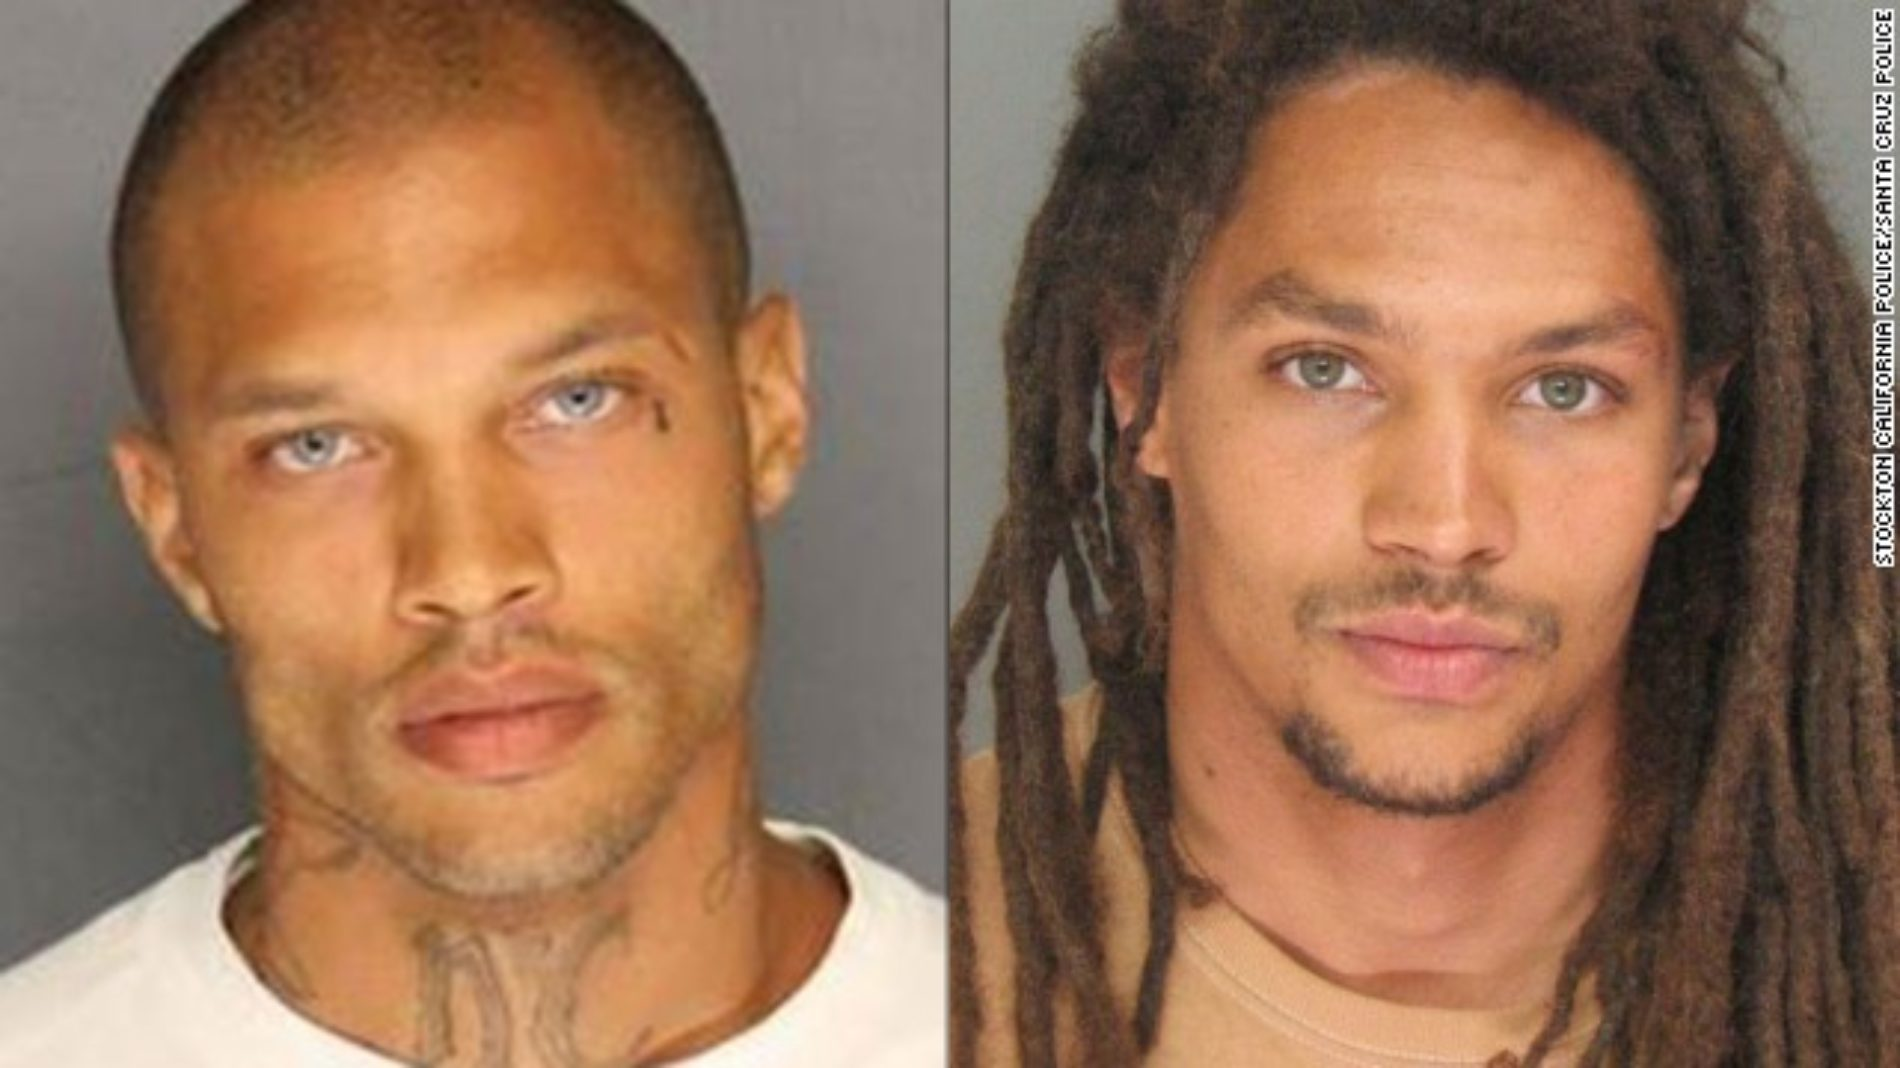 Move Over Jeremy Meeks: New Sexy Mugshot Goes Viral